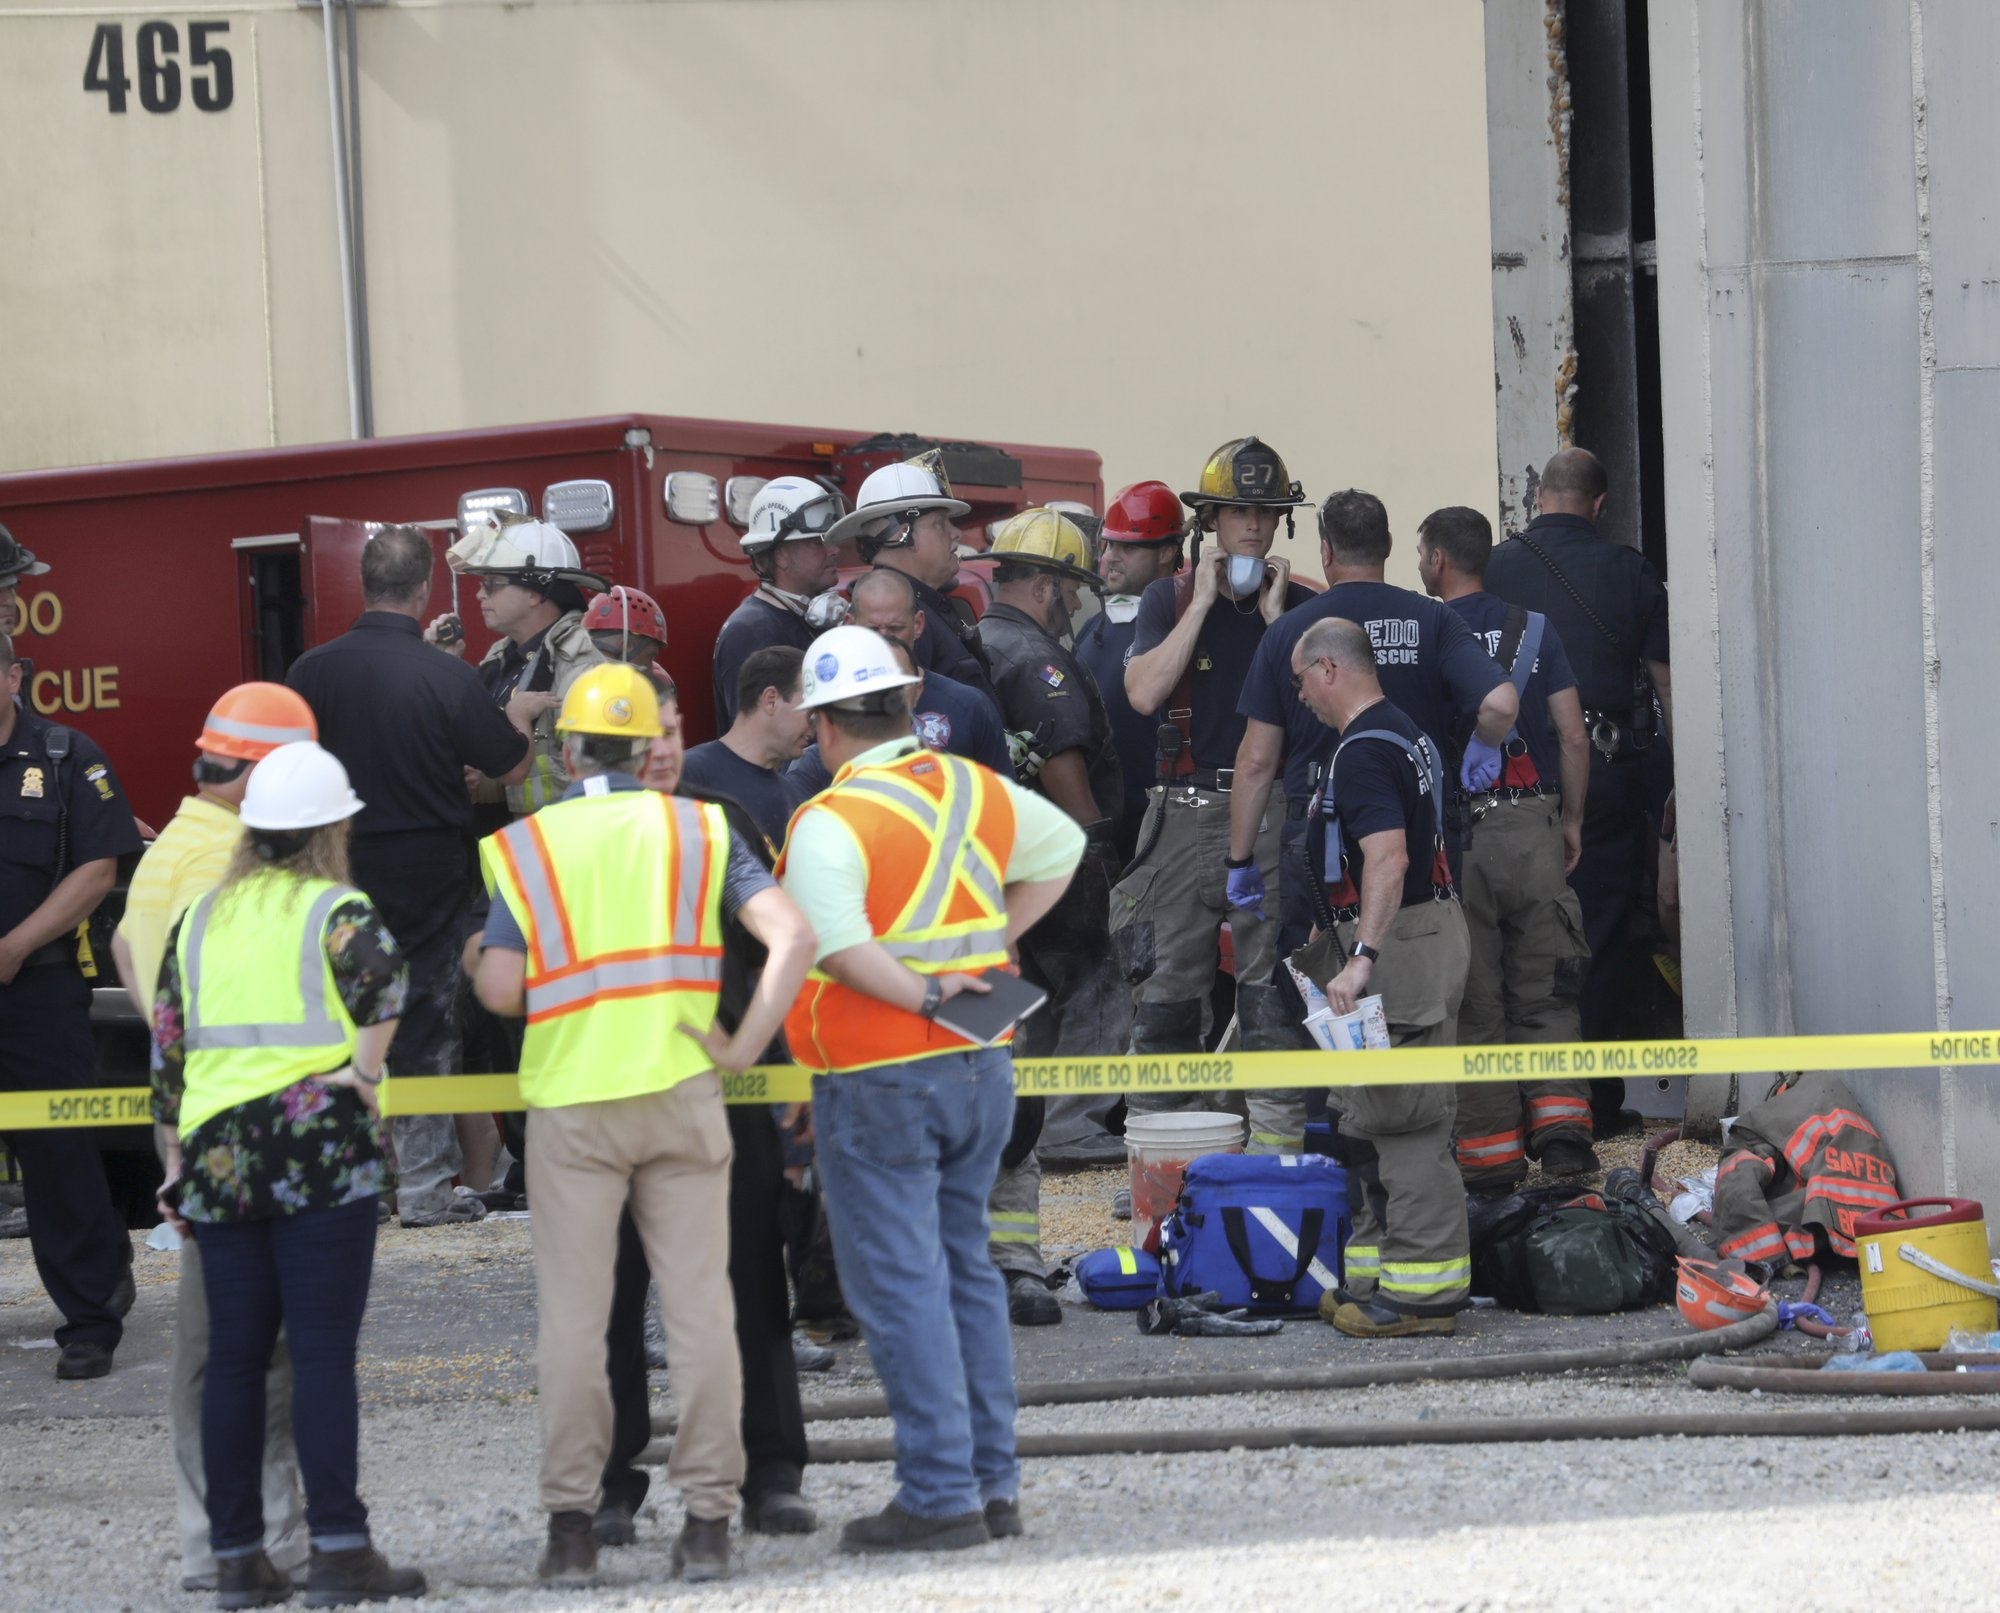 2 workers die after being trapped in grain silo